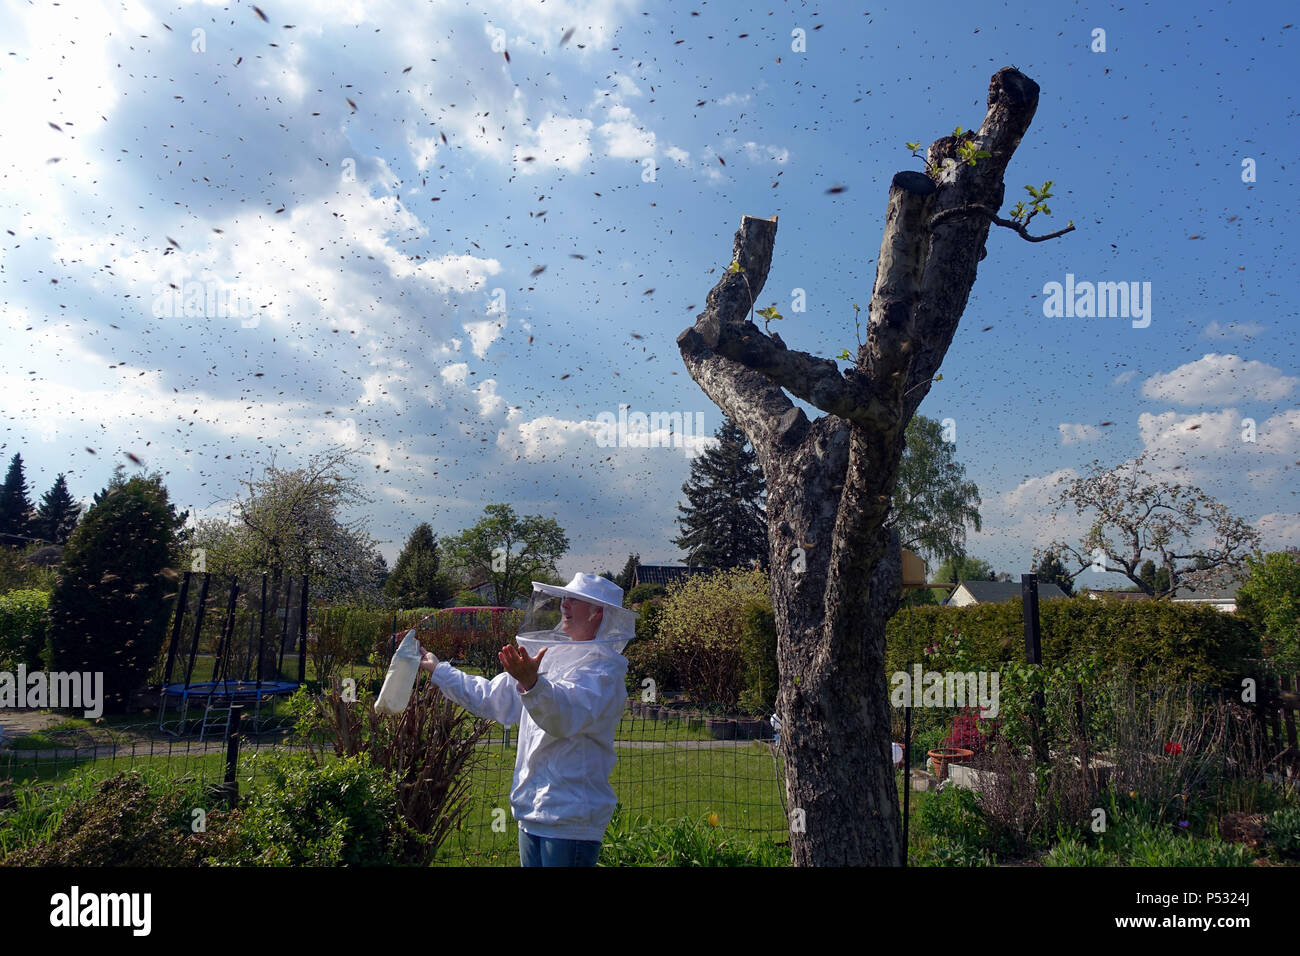 03.05.2016, Berlin, swarm of bees in the air in a small garden in Bukow, beekeeper admires this natural spectacle - Stock Image